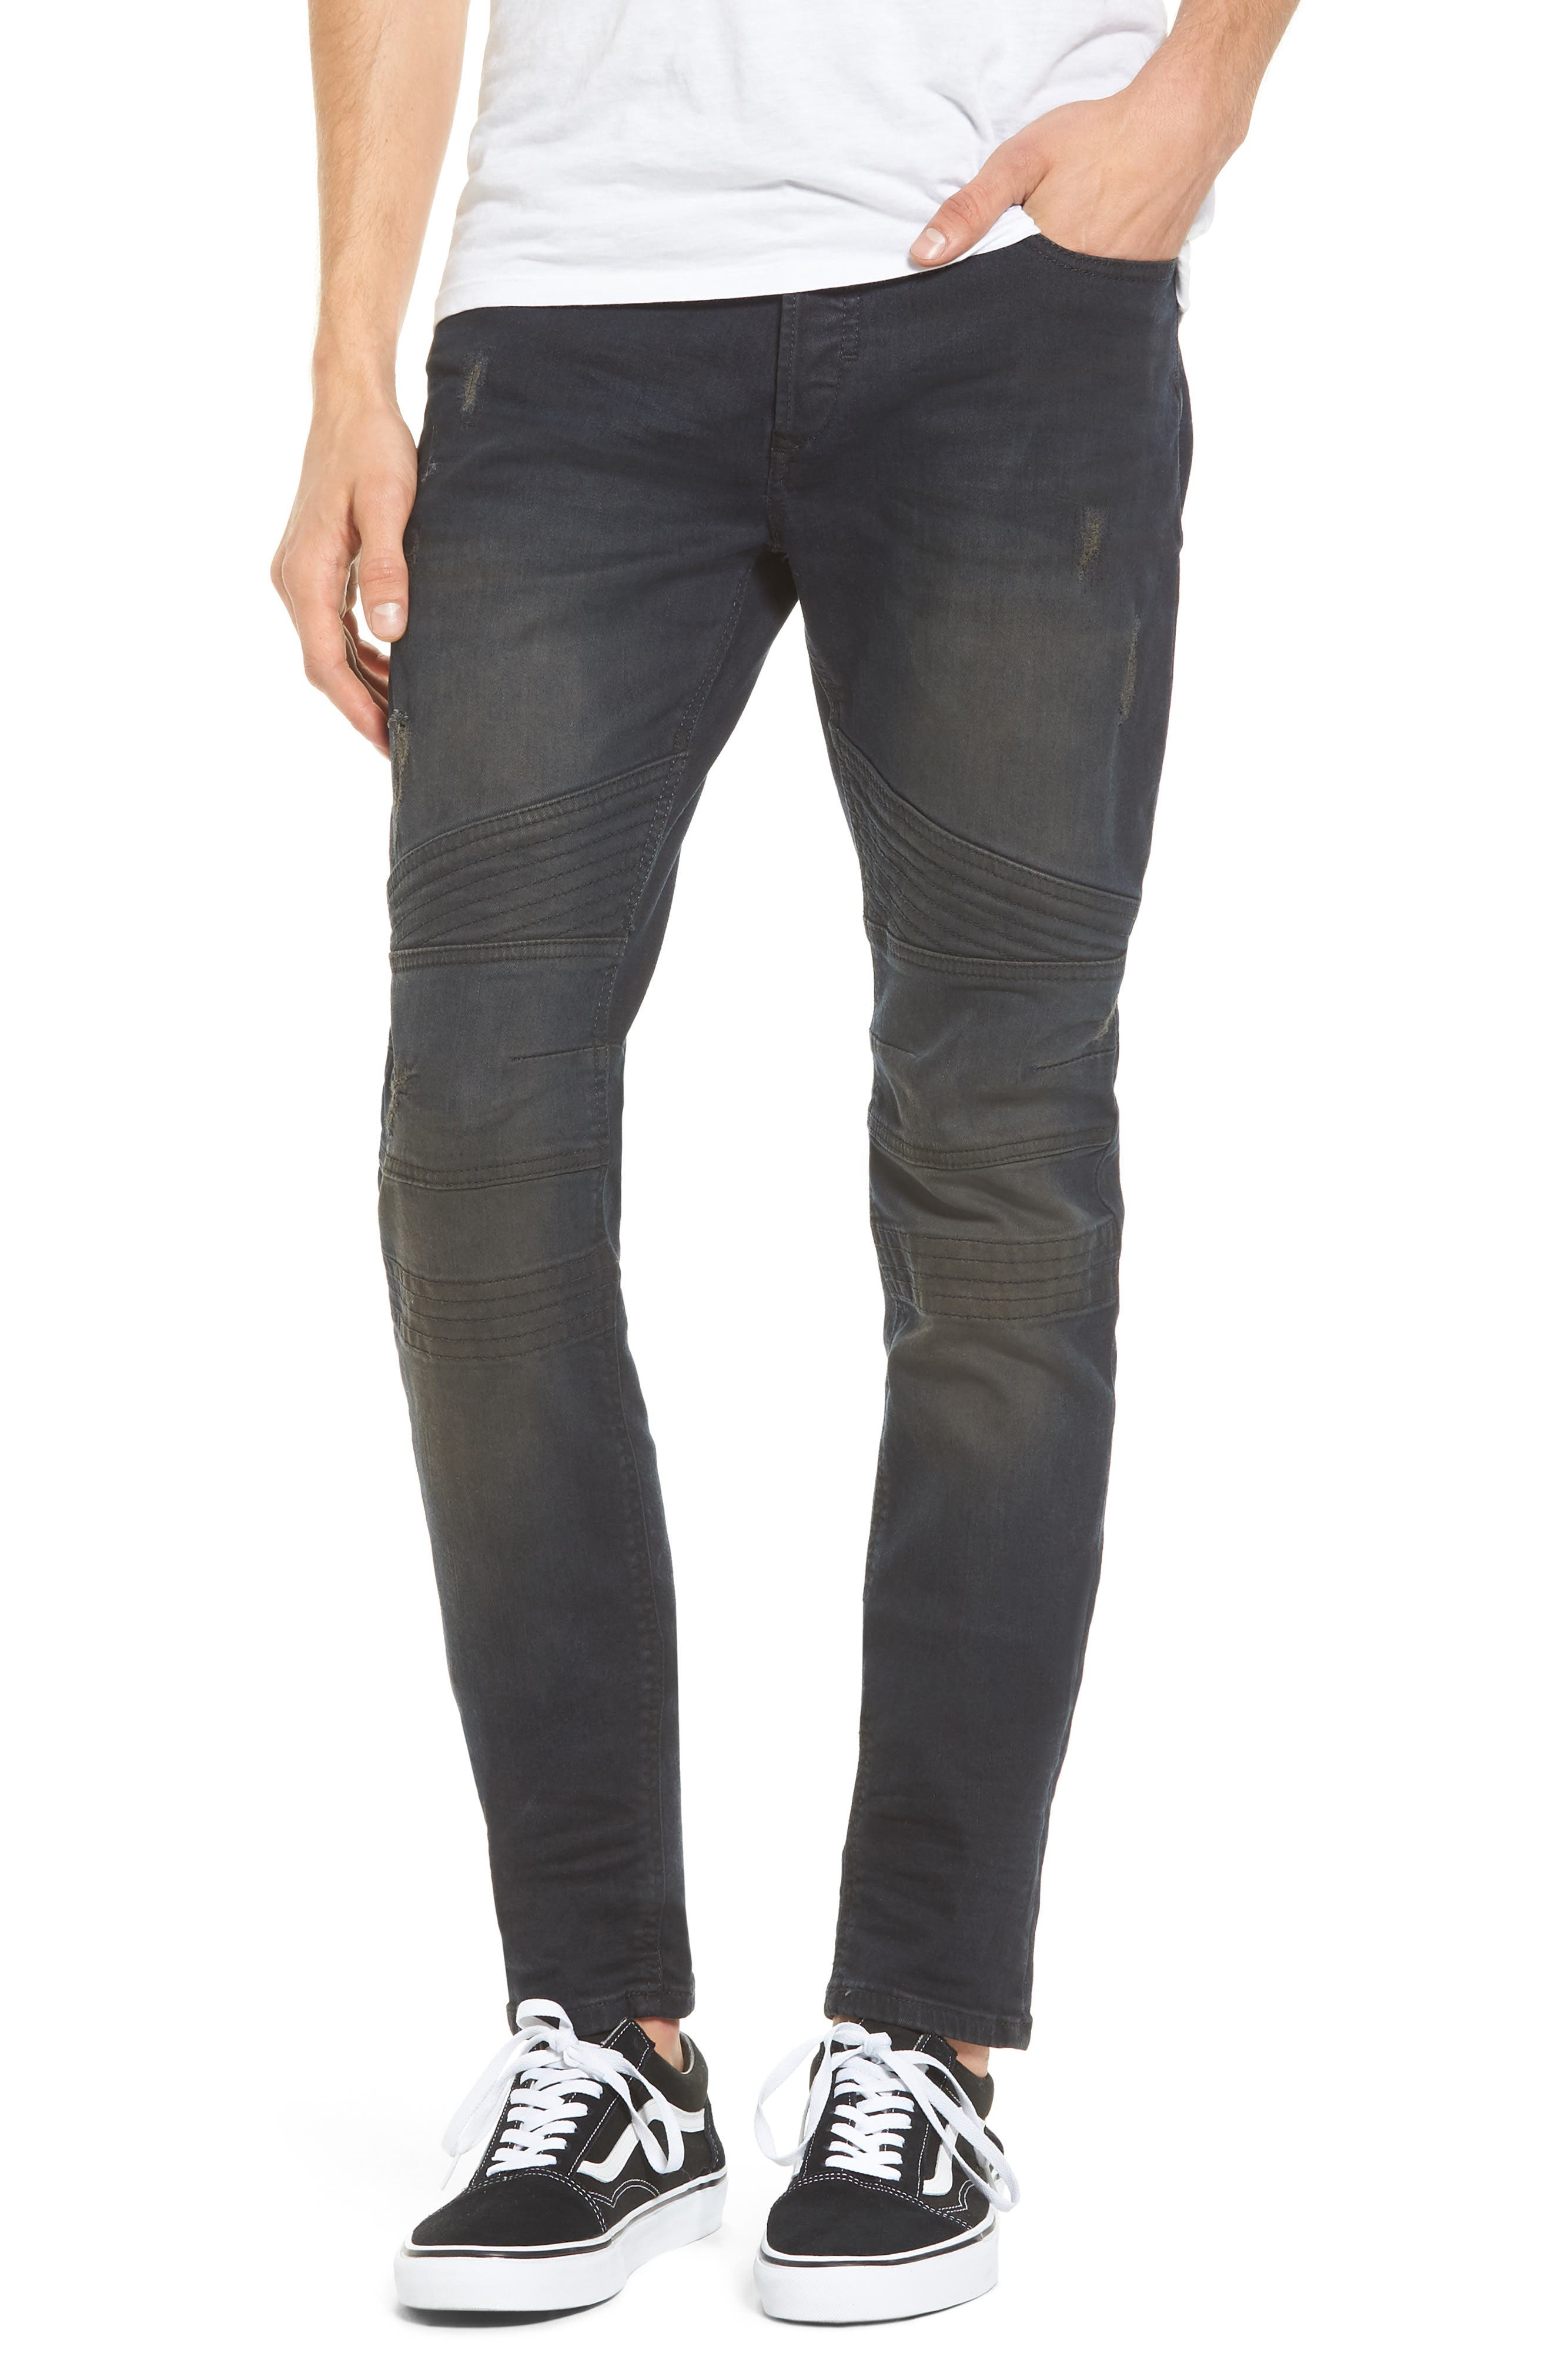 Fourk Skinny Fit Jeans,                             Main thumbnail 1, color,